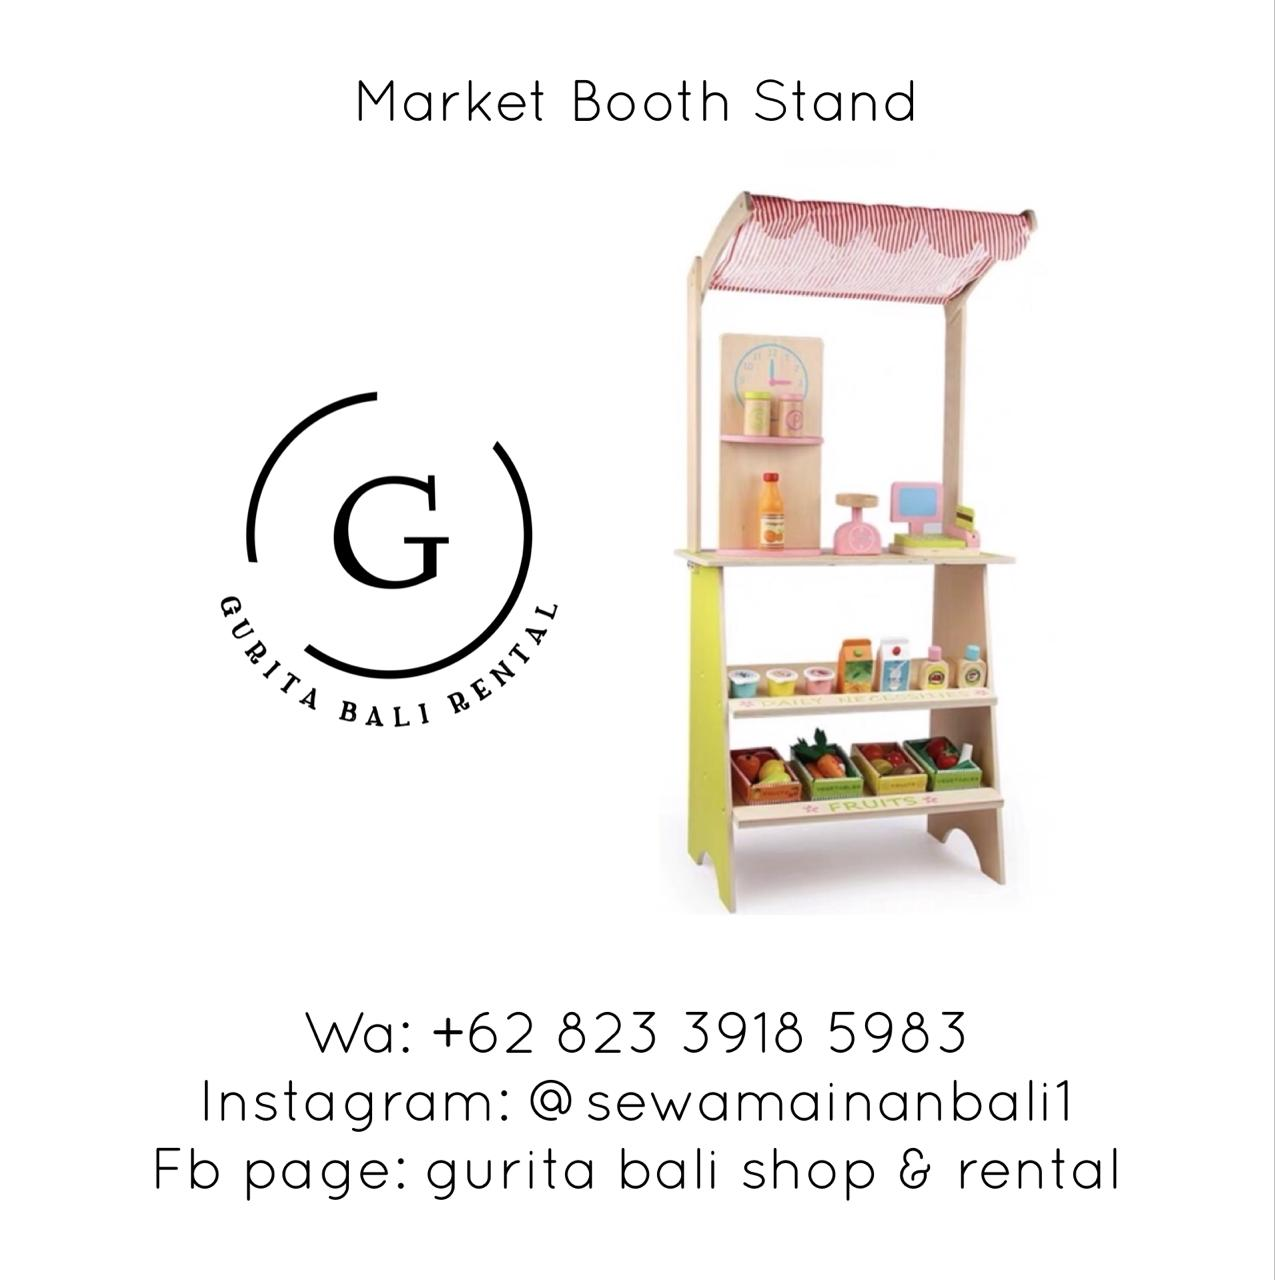 MARKET BOOTH STAND